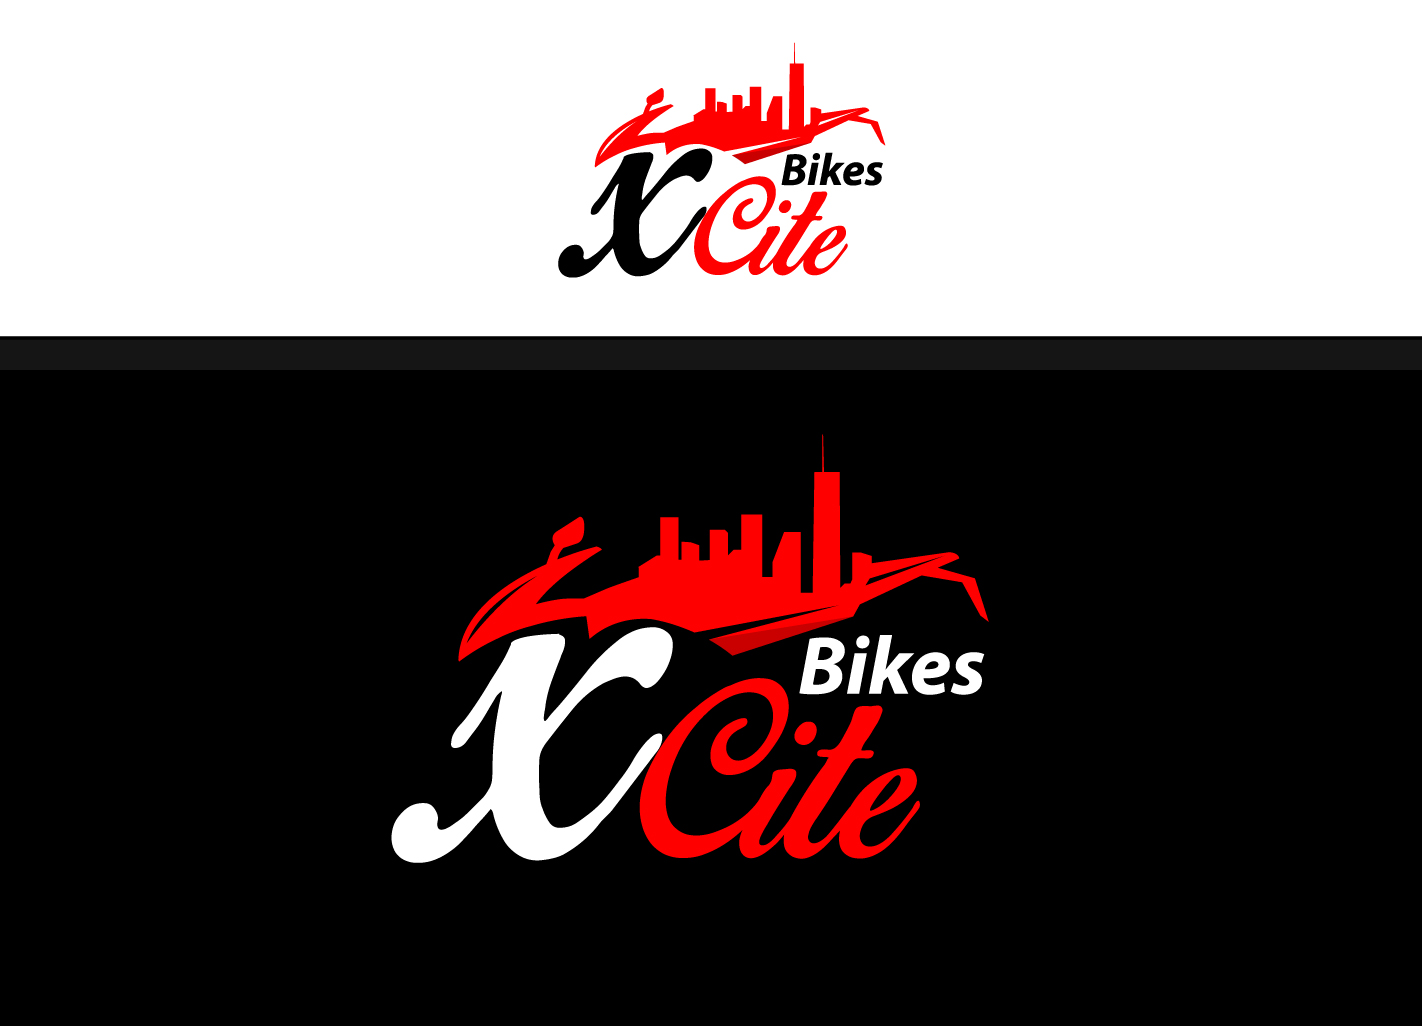 Bold Modern Motorcycle Part Logo Design For Xcite Bikes By Creative Bugs Design 11574156